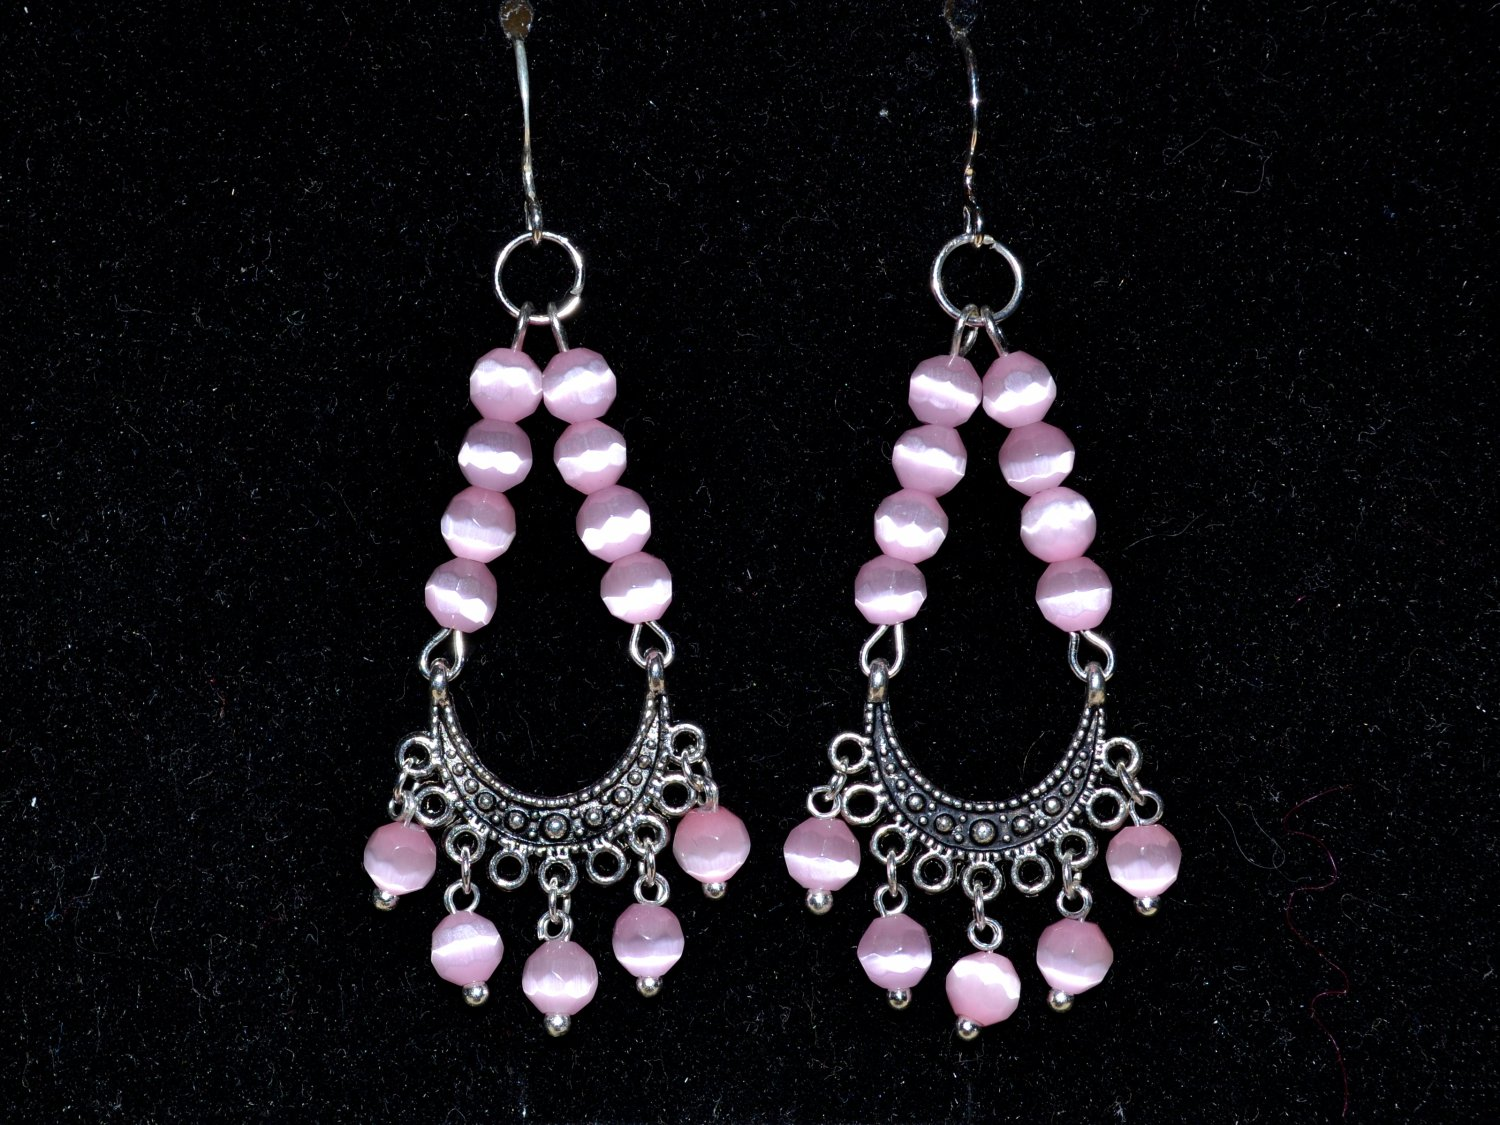 Earrings with cat's-eye and silver earwires